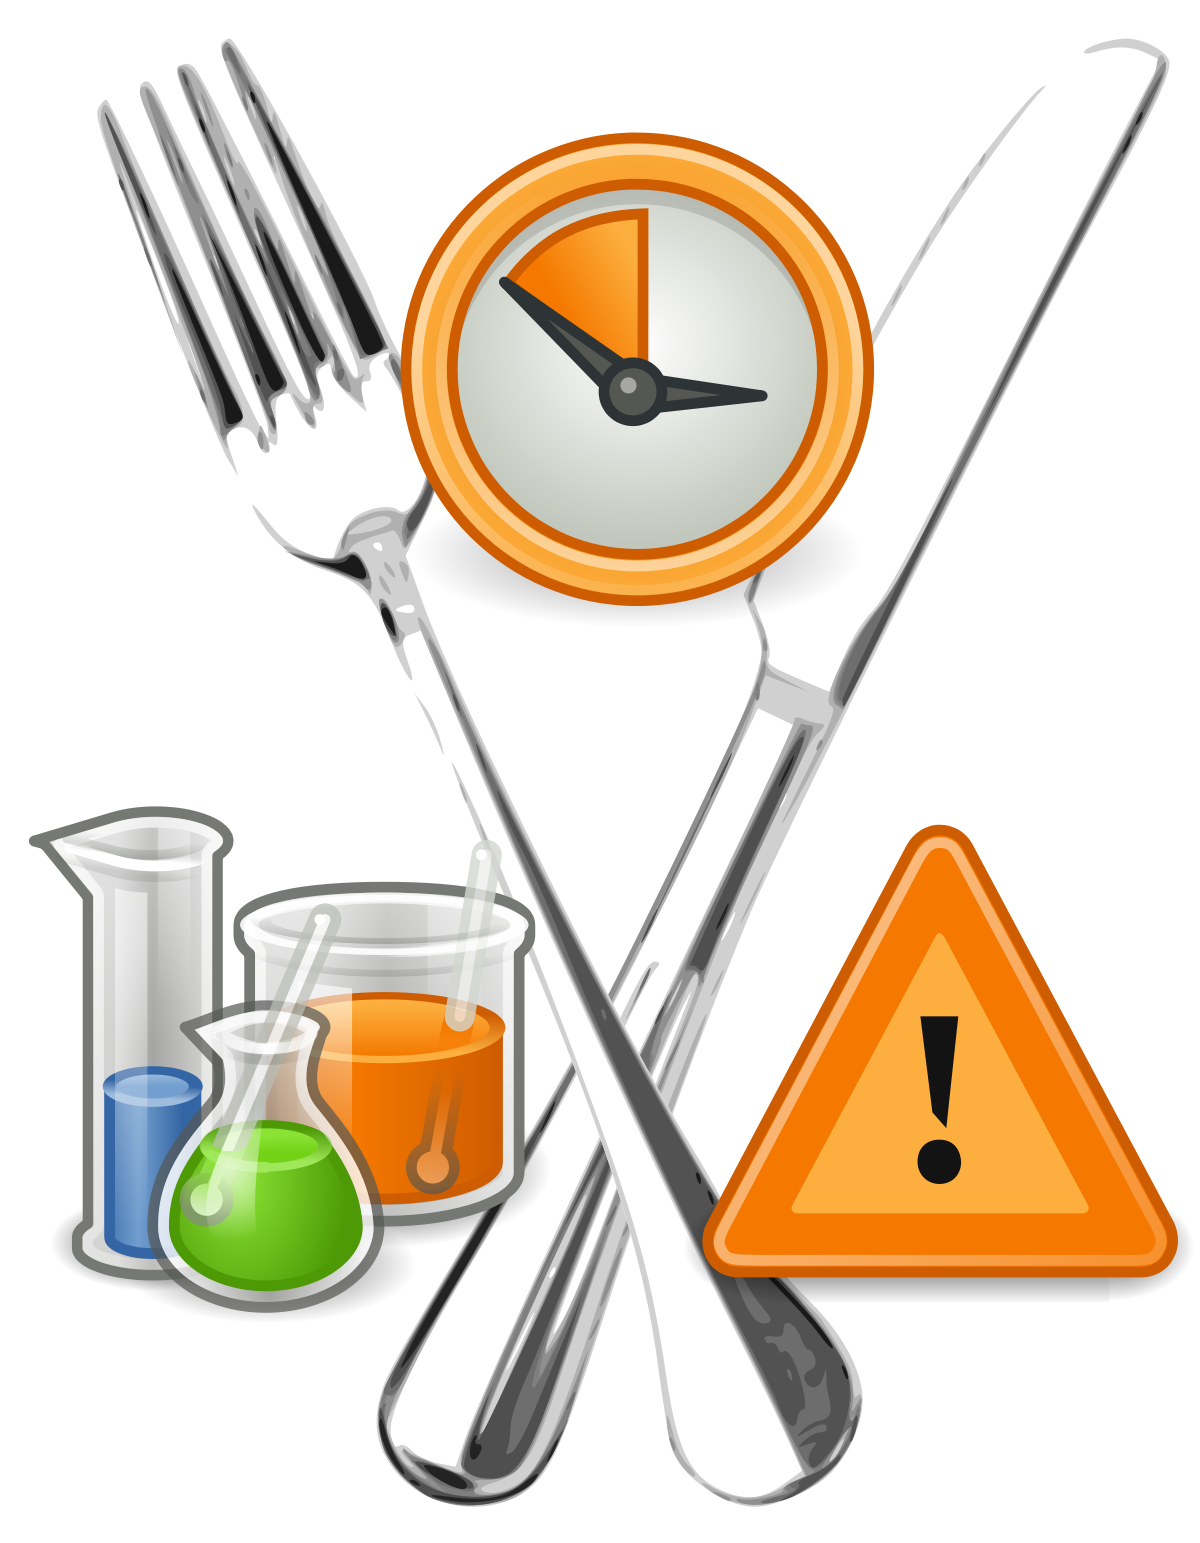 Environment clipart environmental sanitation. Food safety wikipedia